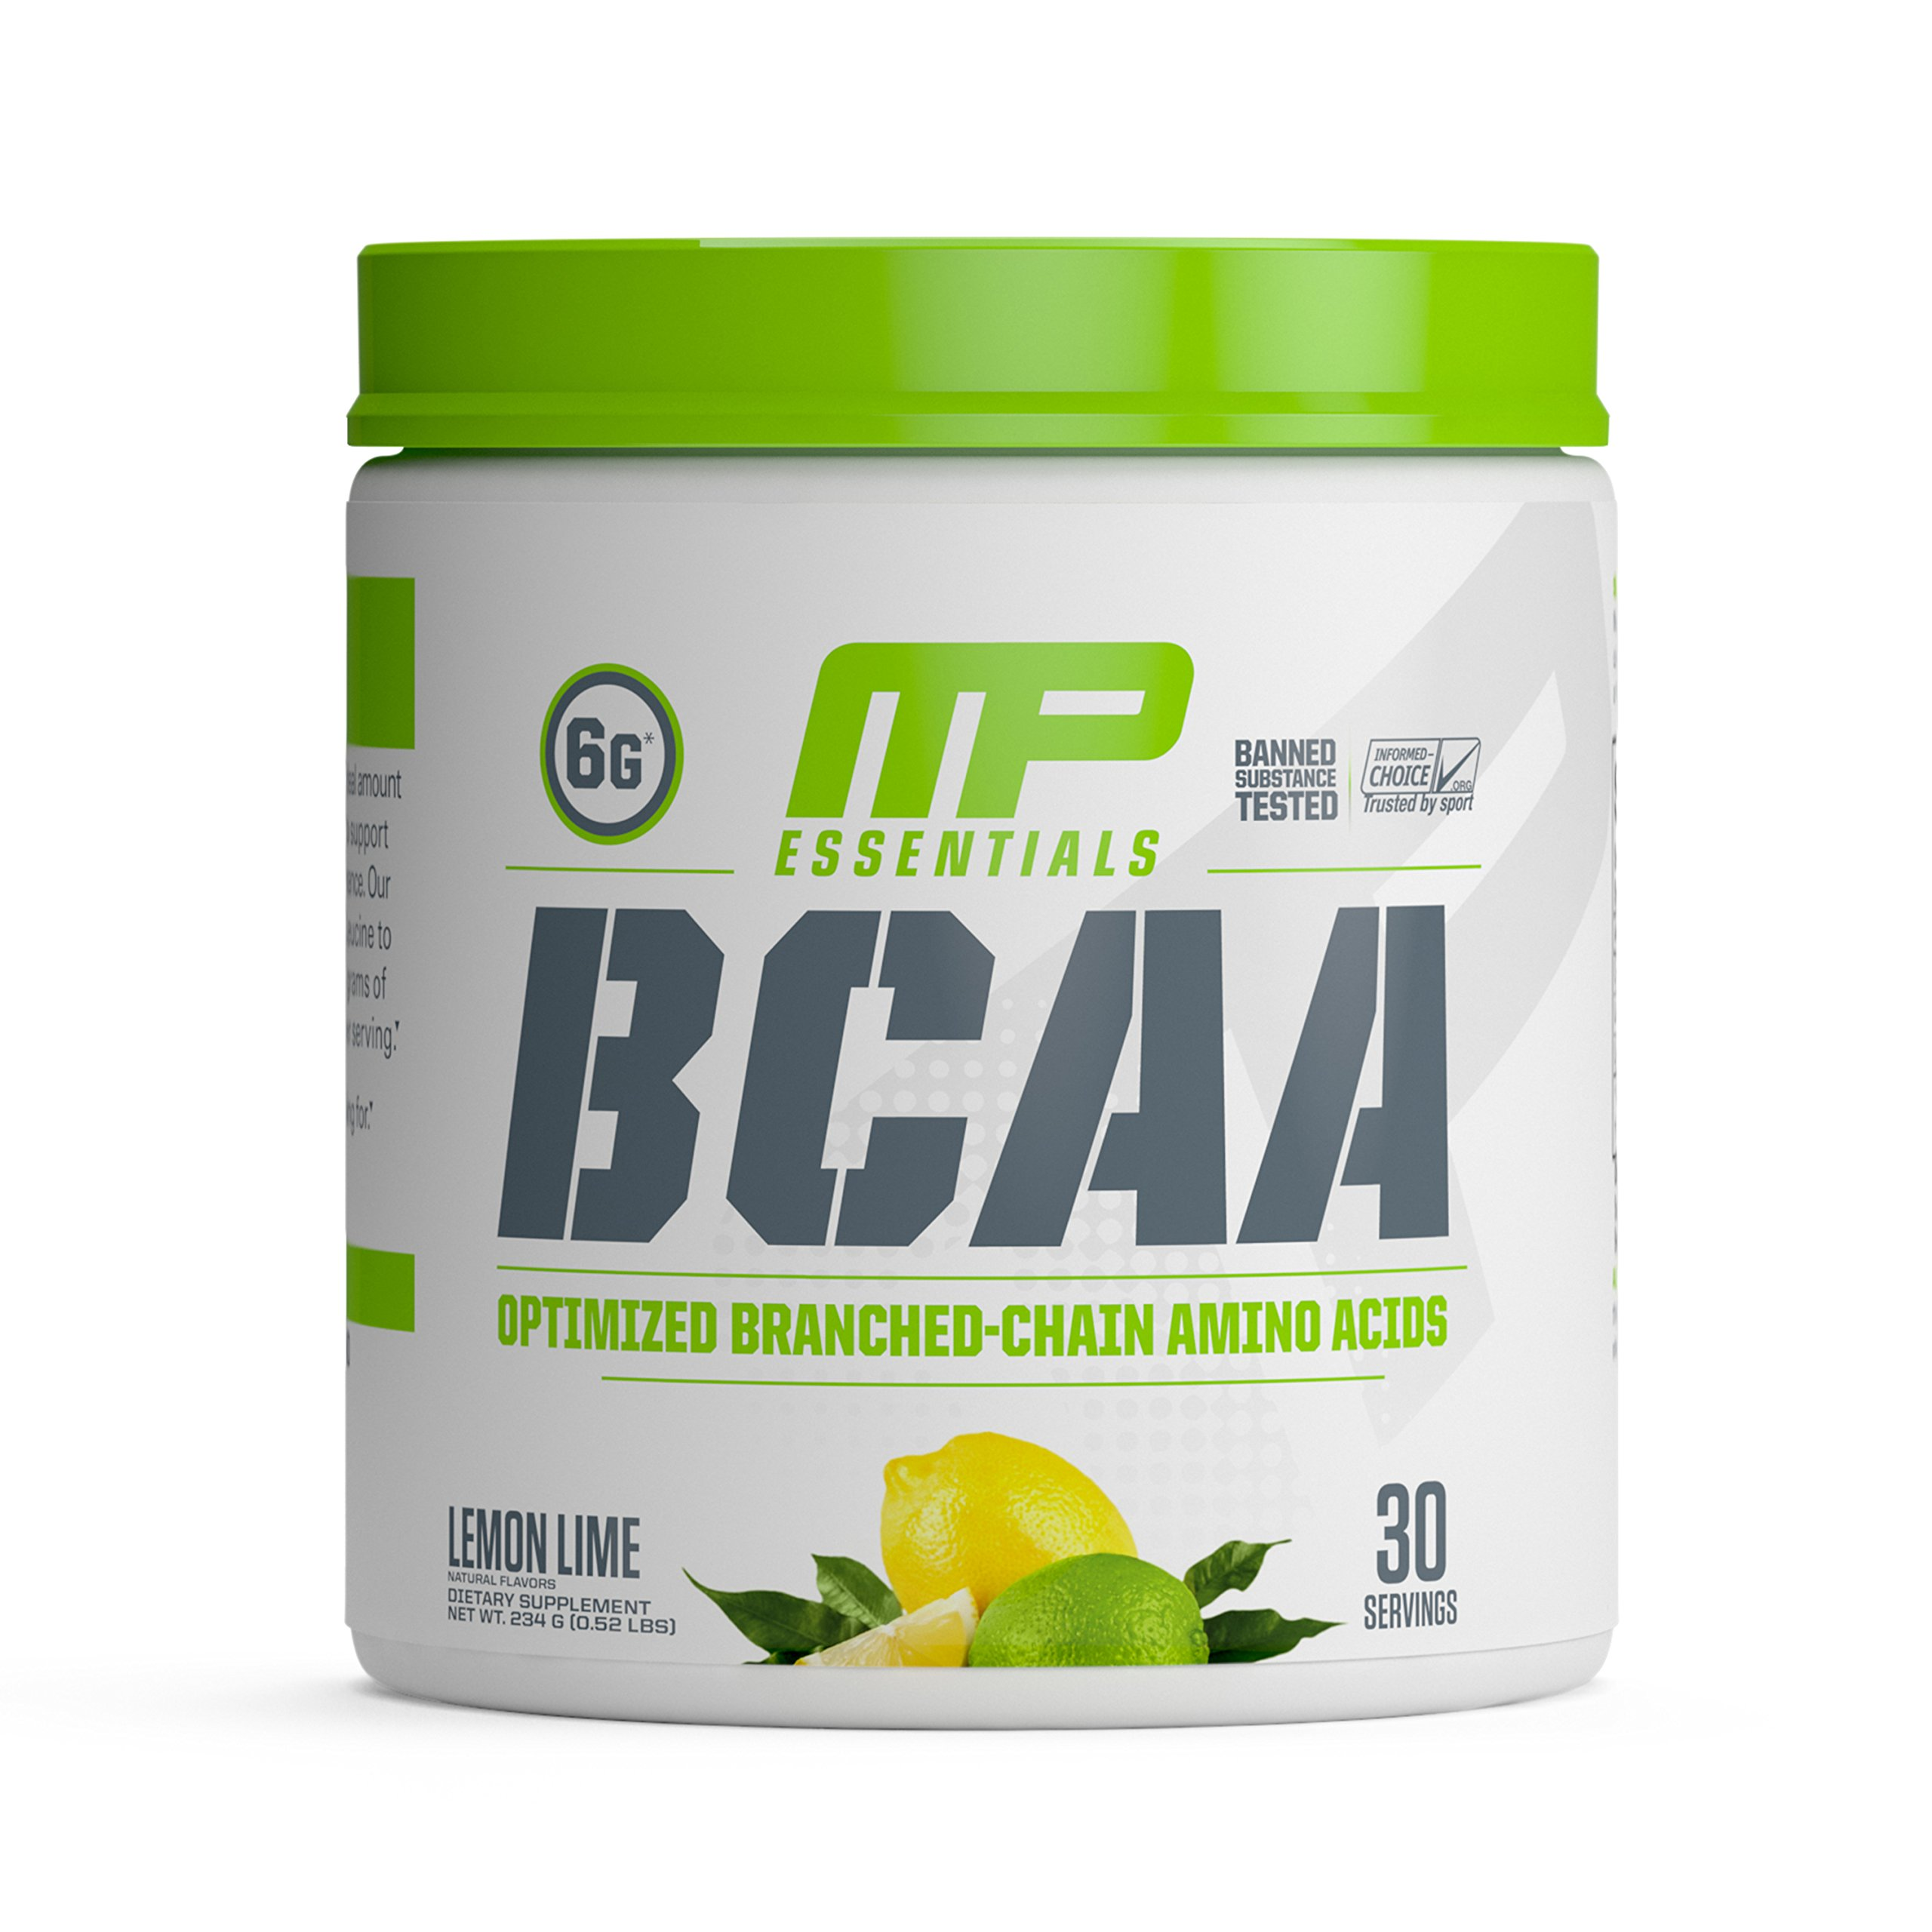 MP Essentials BCAA Powder, 6 Grams of BCAAs Amino Acids, Post Workout Recovery Drink for Muscle Recovery and Muscle Building, MusclePharm, Lemon Lime, 30 Servings